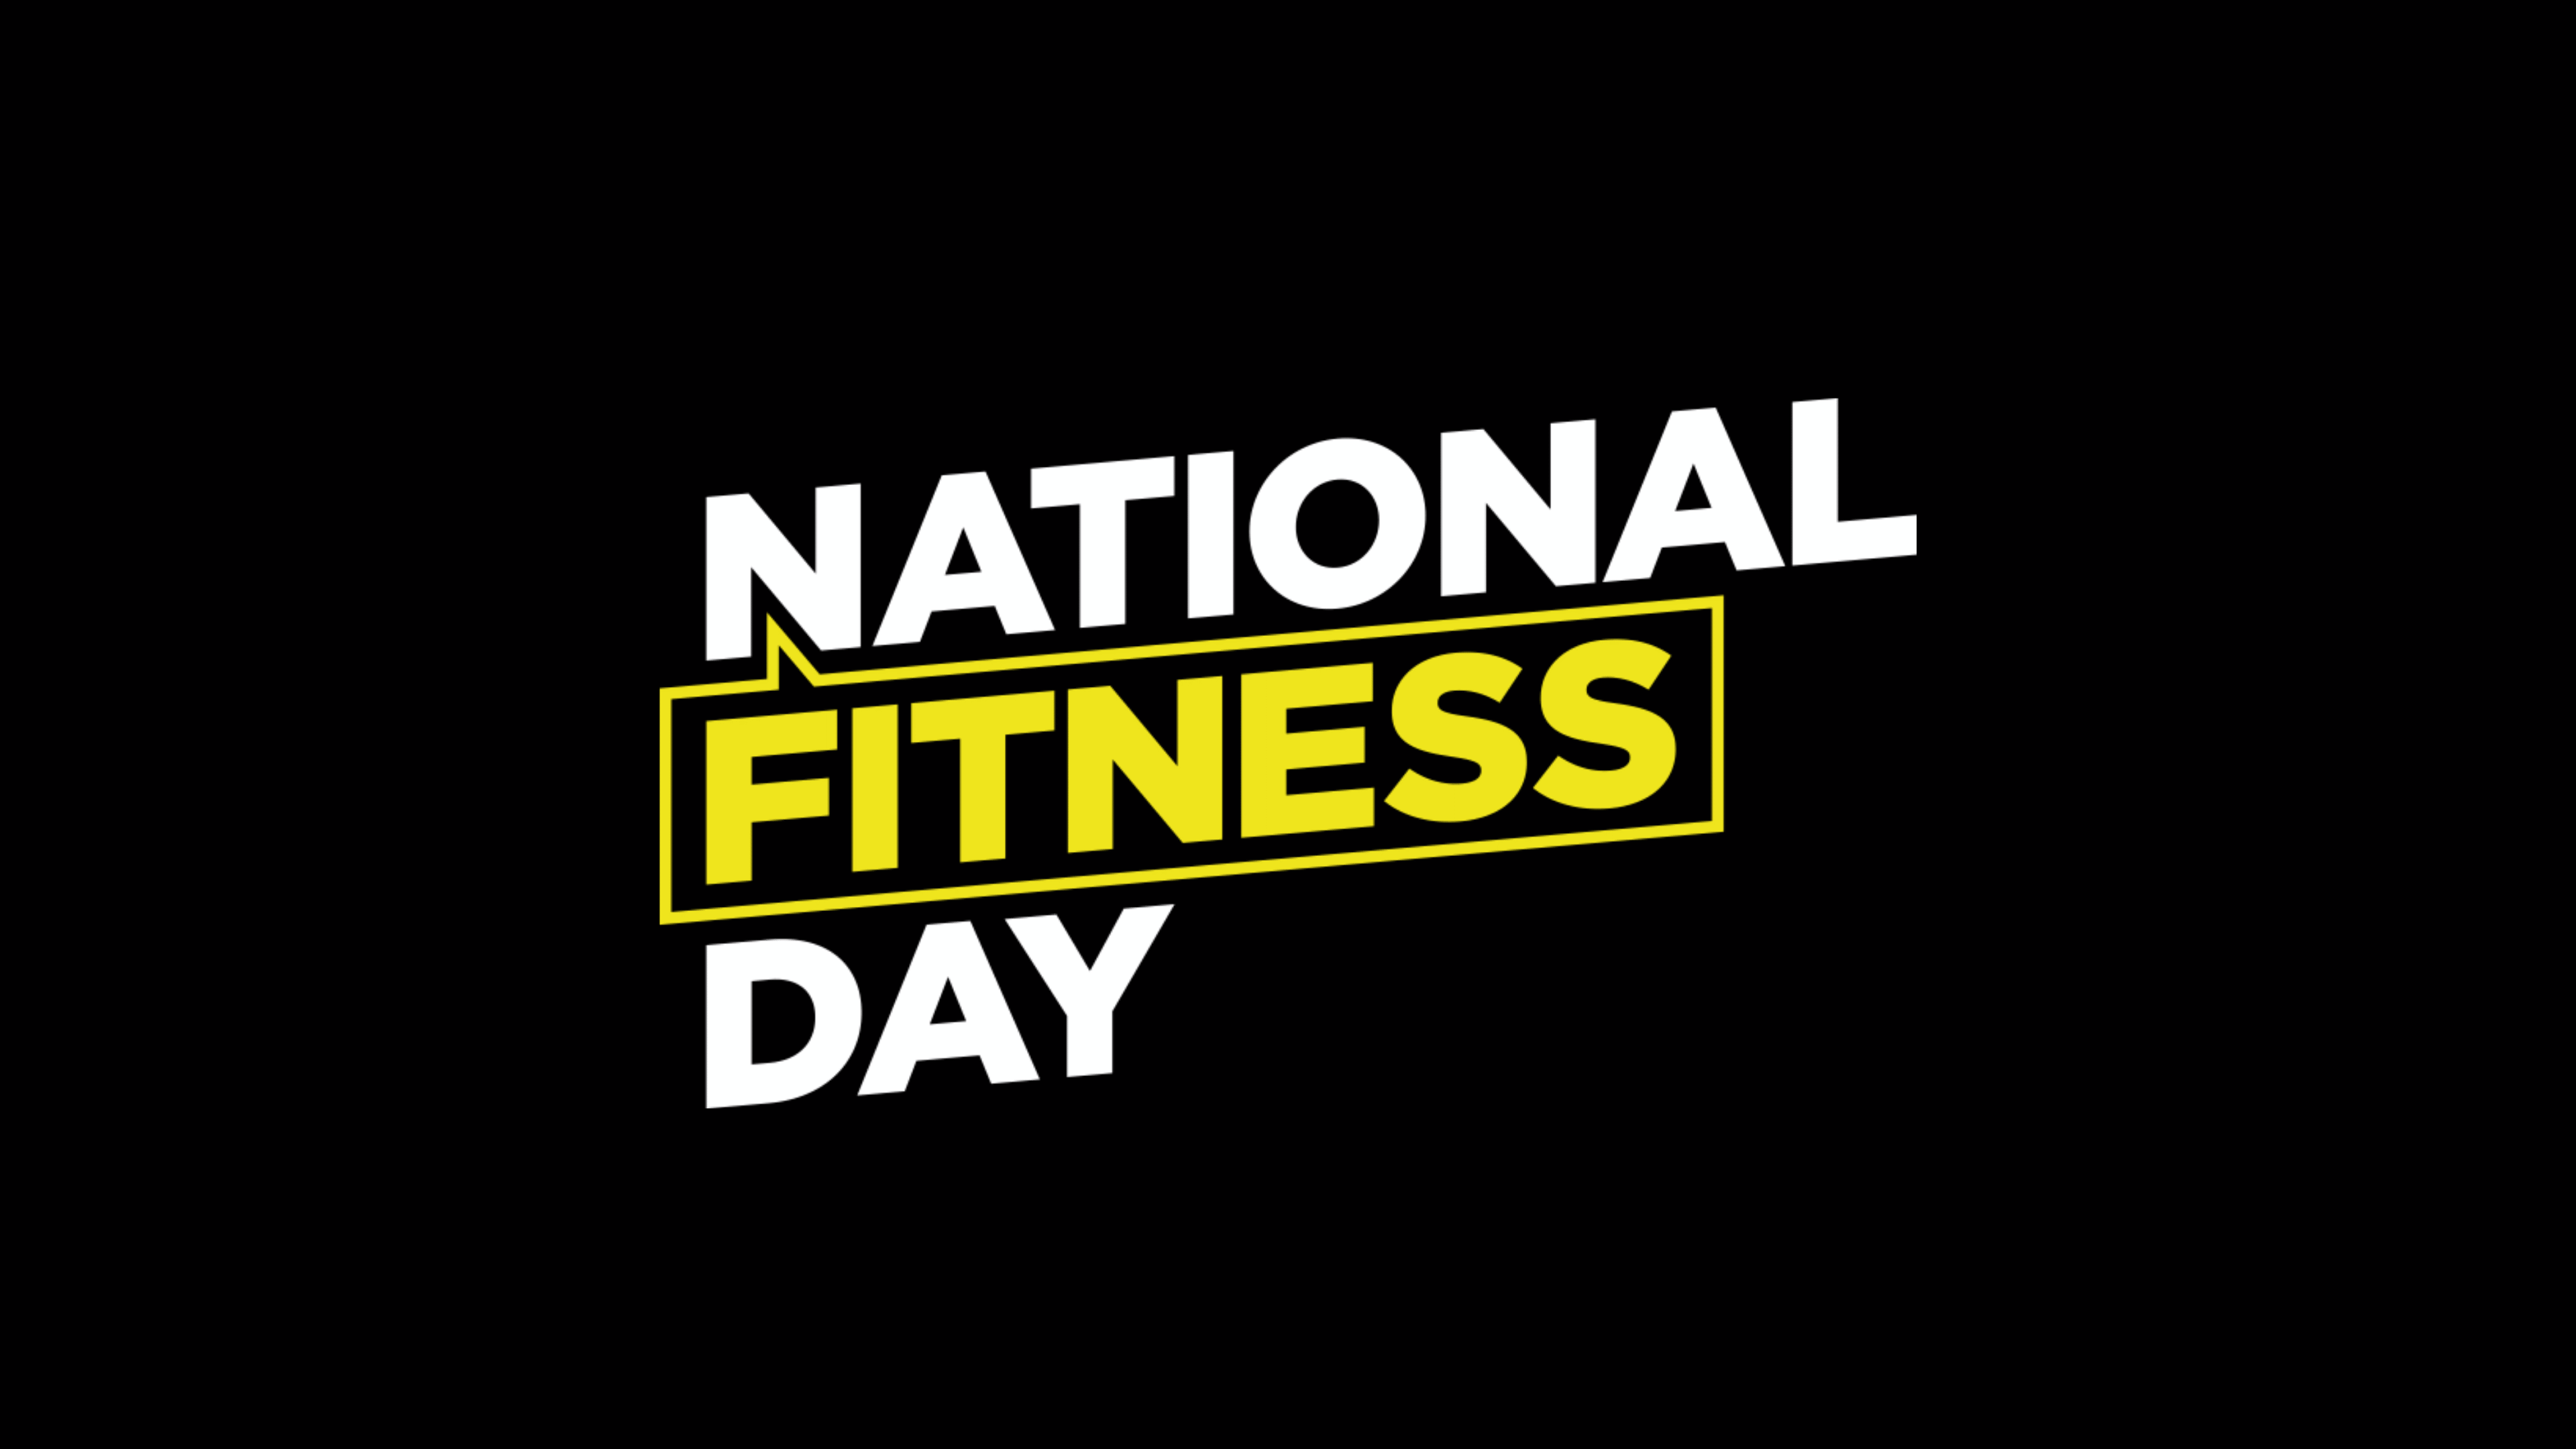 National Fitness Day 2021